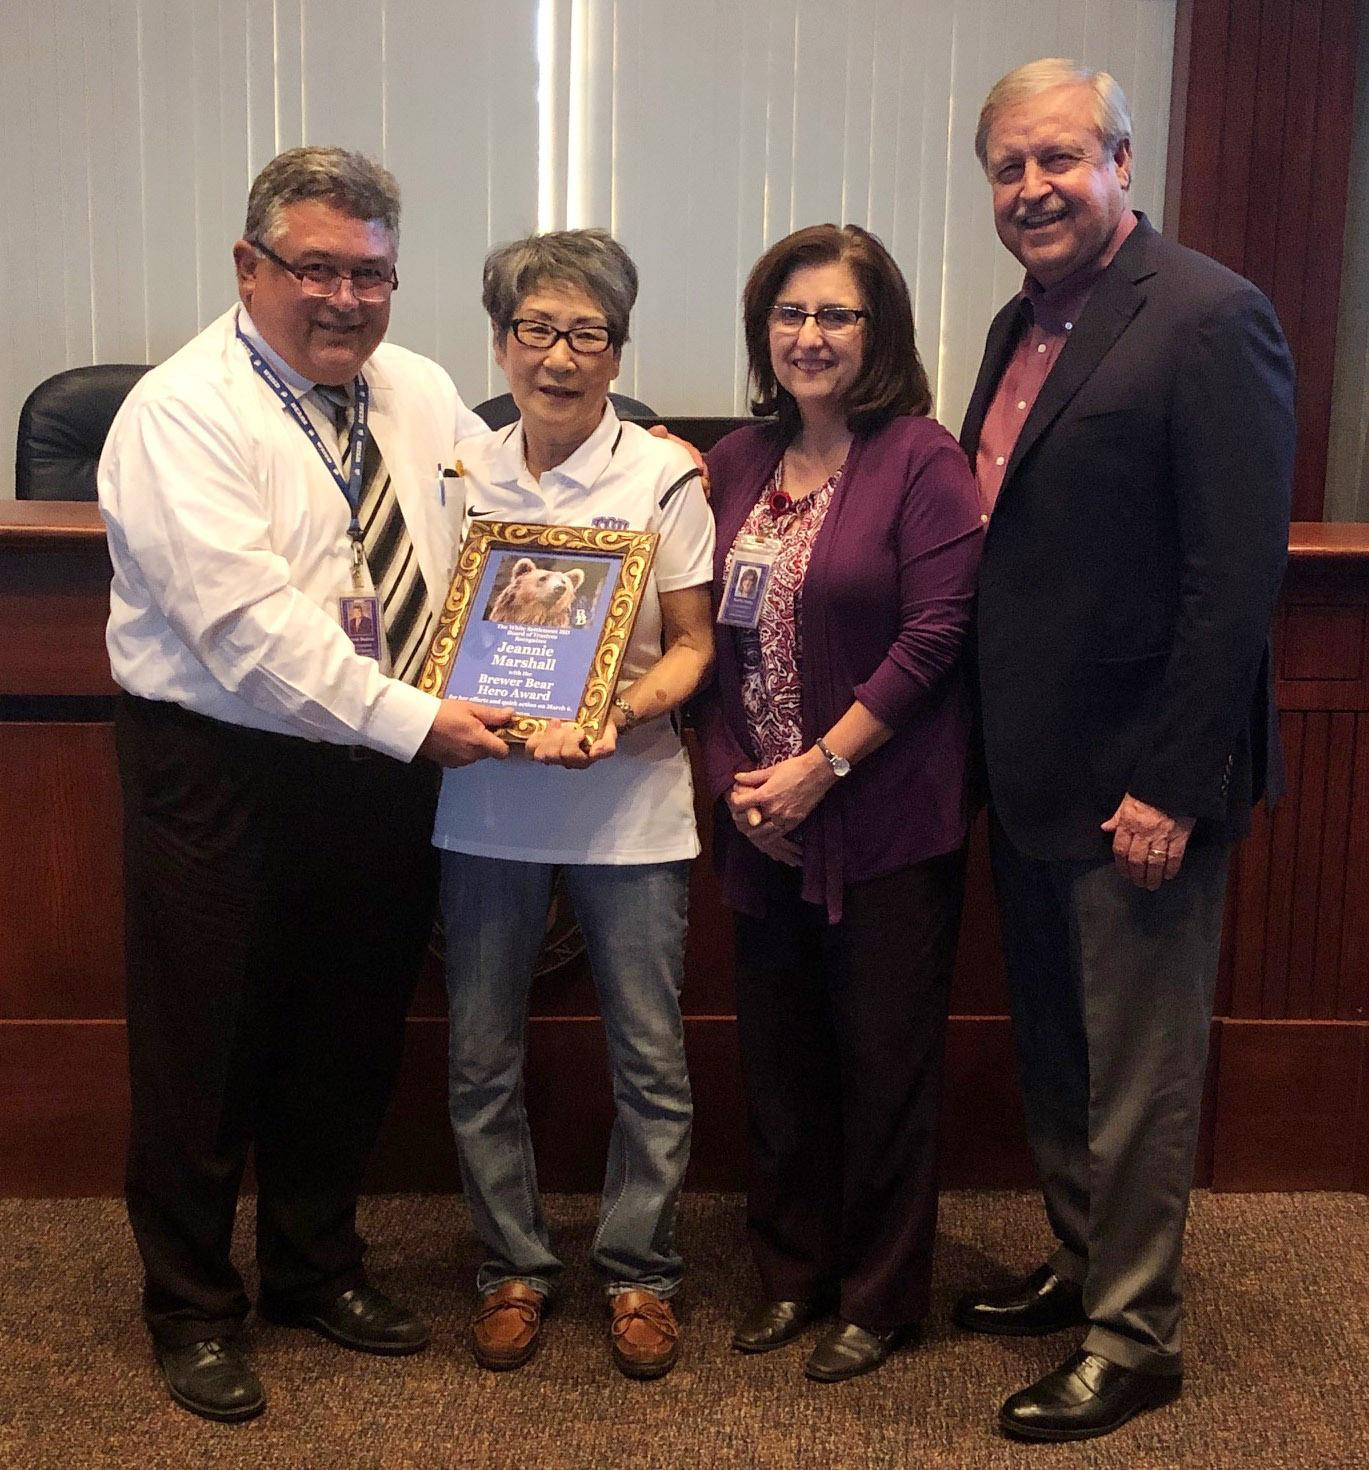 The WSISD Board of Trustees and Administration recognized Brewer Middle School child nutrition employee Jeannie Marshall with the Brewer Bear Hero Award during its March 25 meeting.